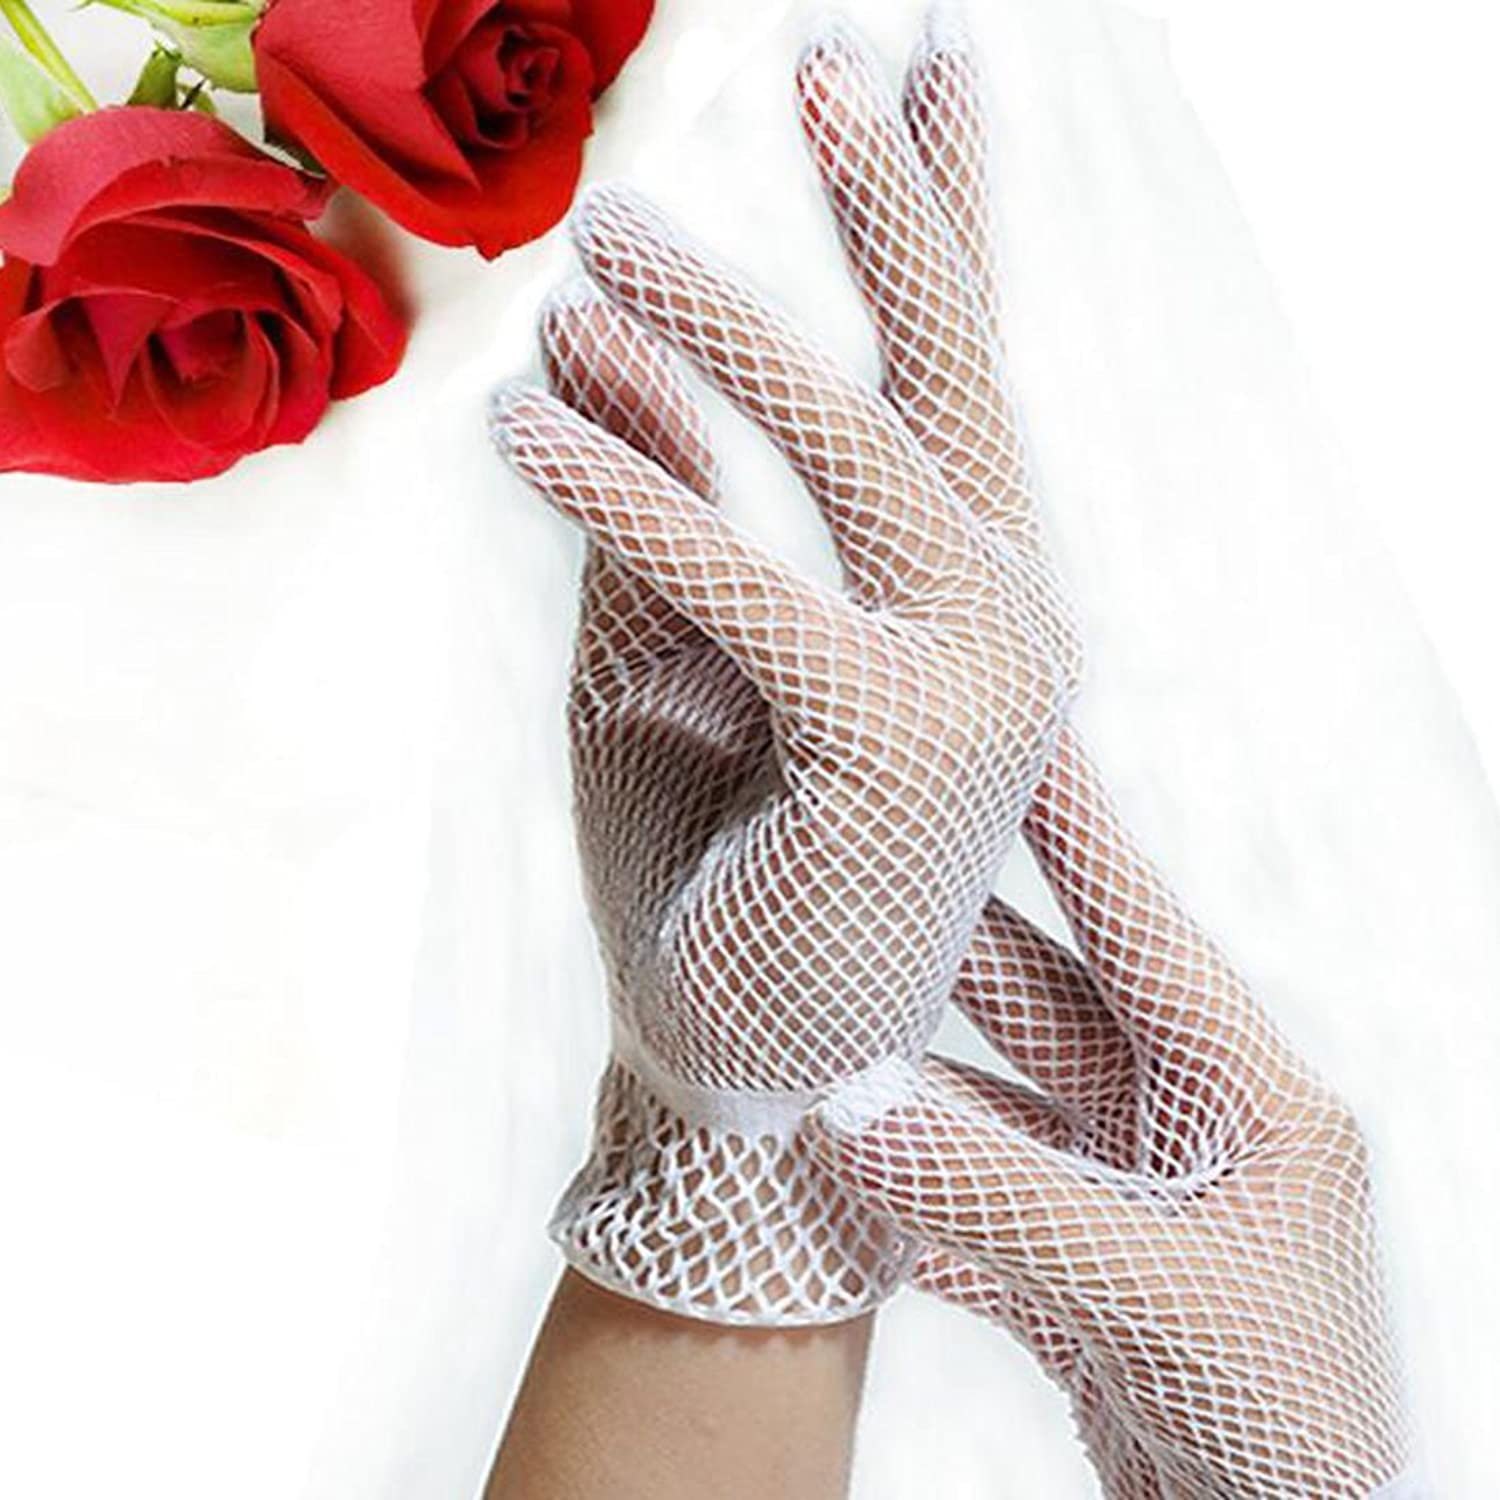 Vintage Gloves History- 1900, 1910, 1920, 1930 1940, 1950, 1960 Fishnet Mesh Gloves Fashion Women Gloves Summer UV Protection Lace Glove White $2.11 AT vintagedancer.com